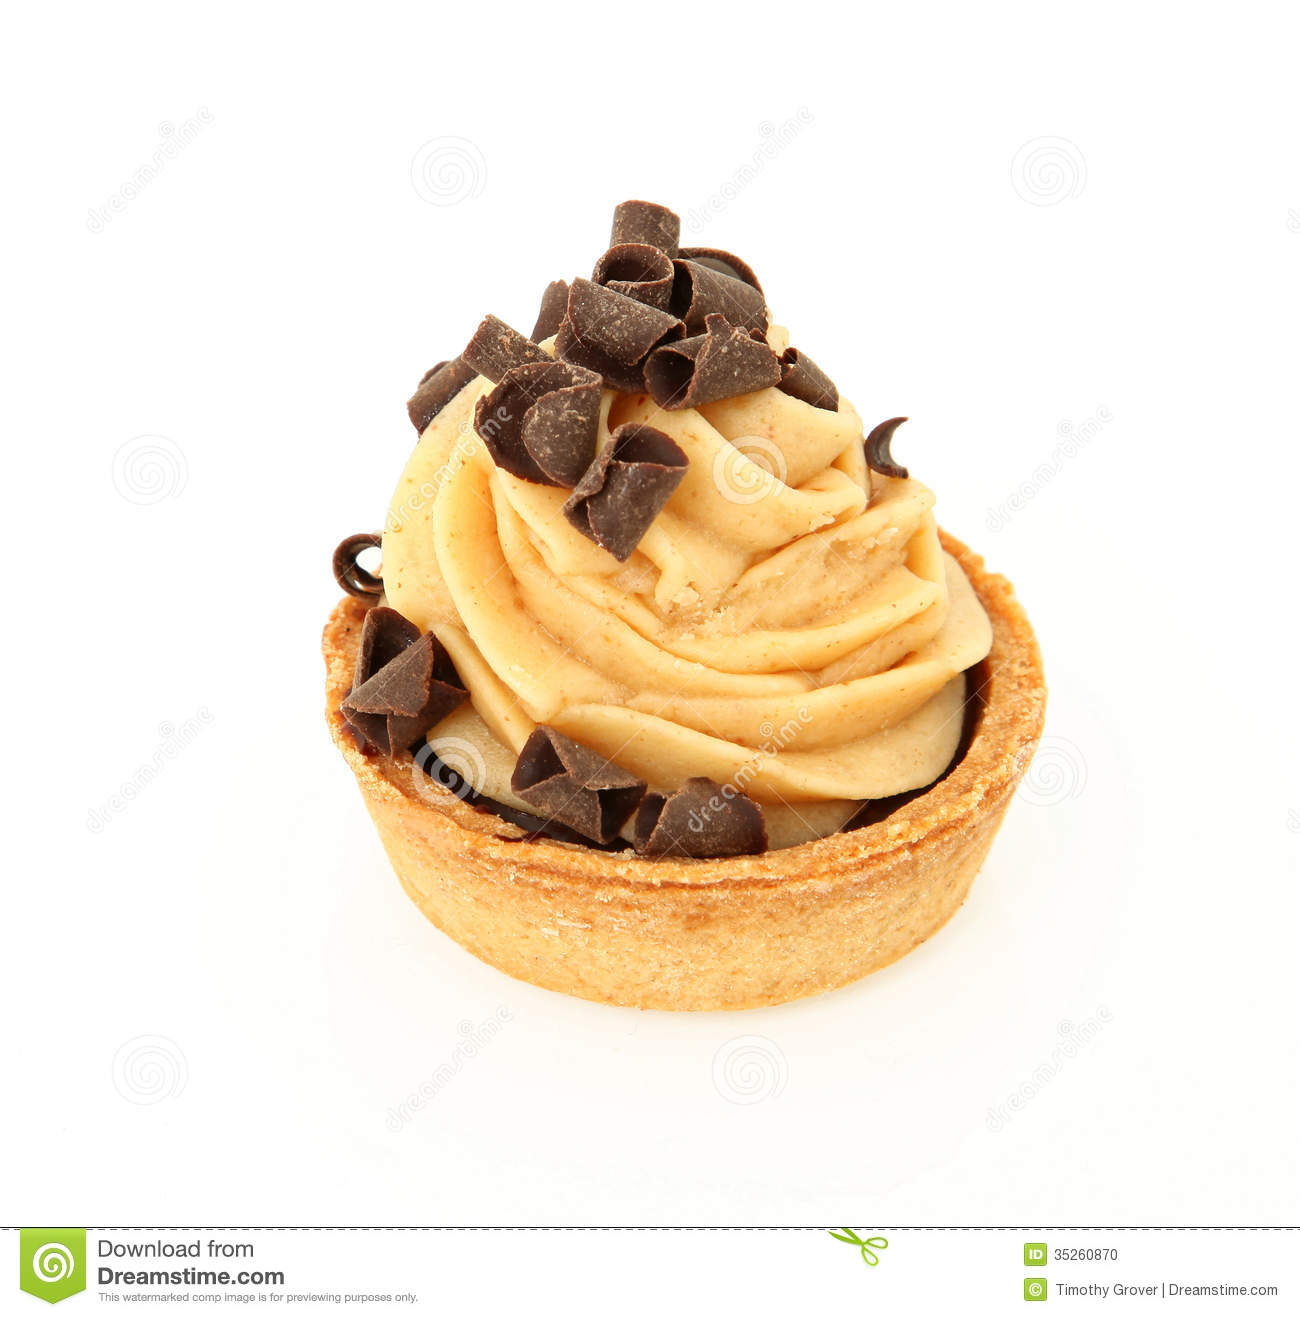 Chocolate Peanut Butter Tart Stock Photo - Image: 35260870